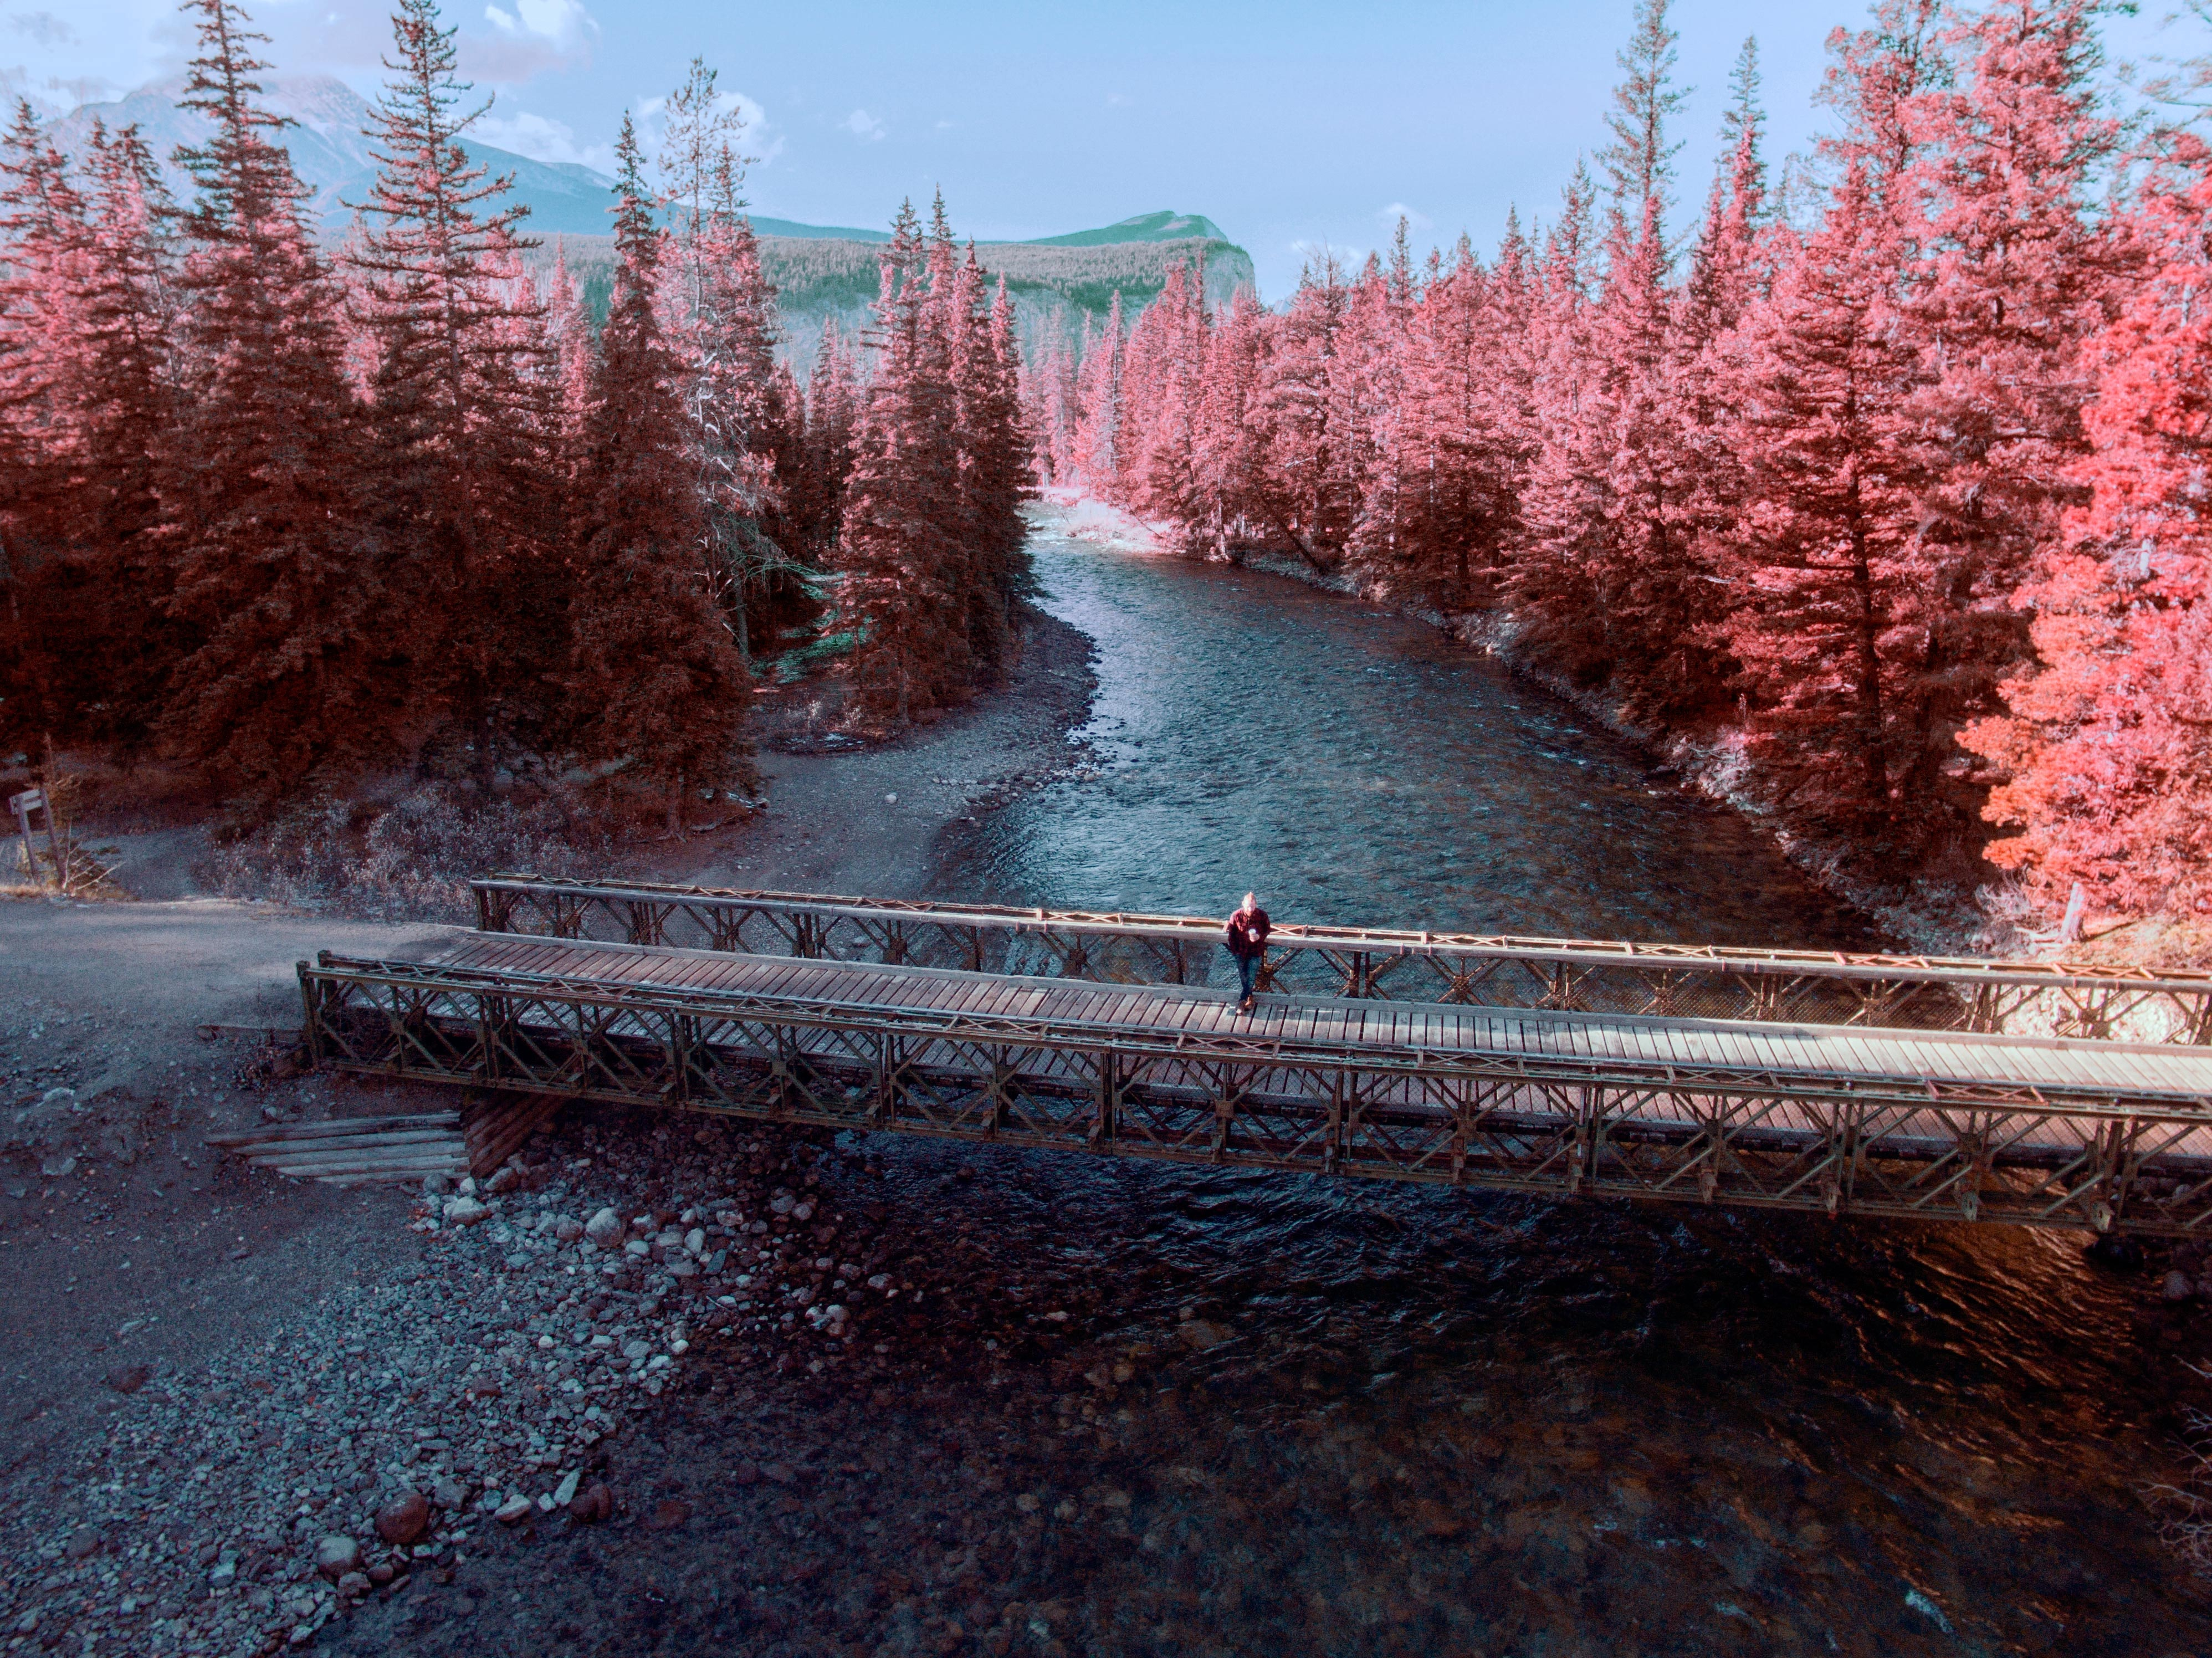 A person standing on a footbridge over a stream, surrounded by pink trees in Jasper